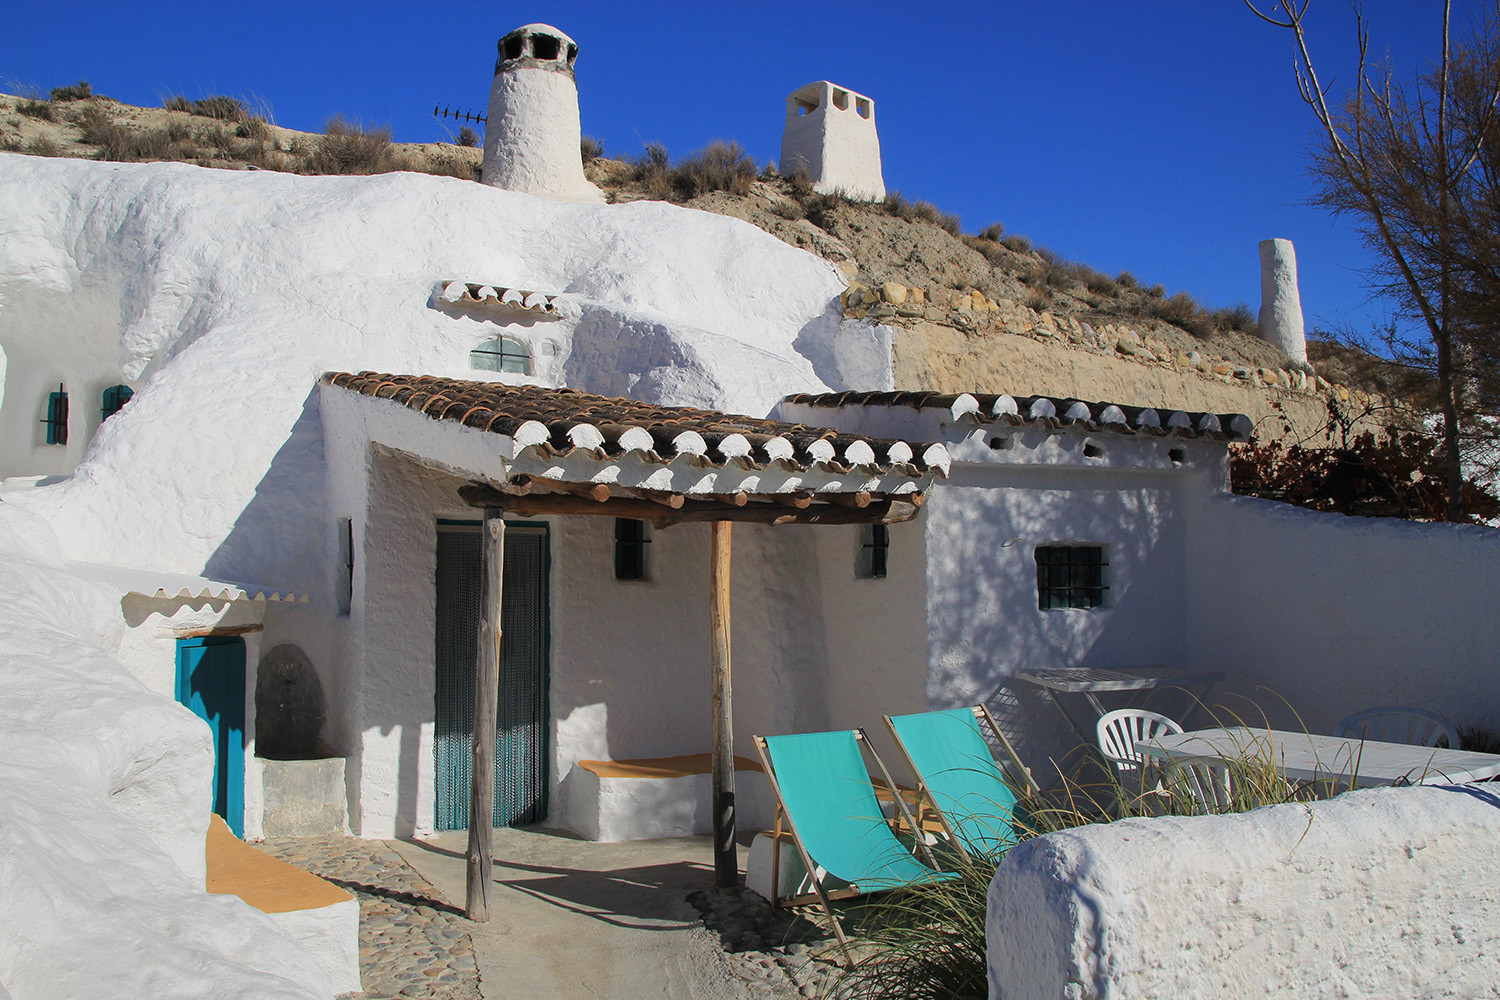 A Renovated Cave House in Baza